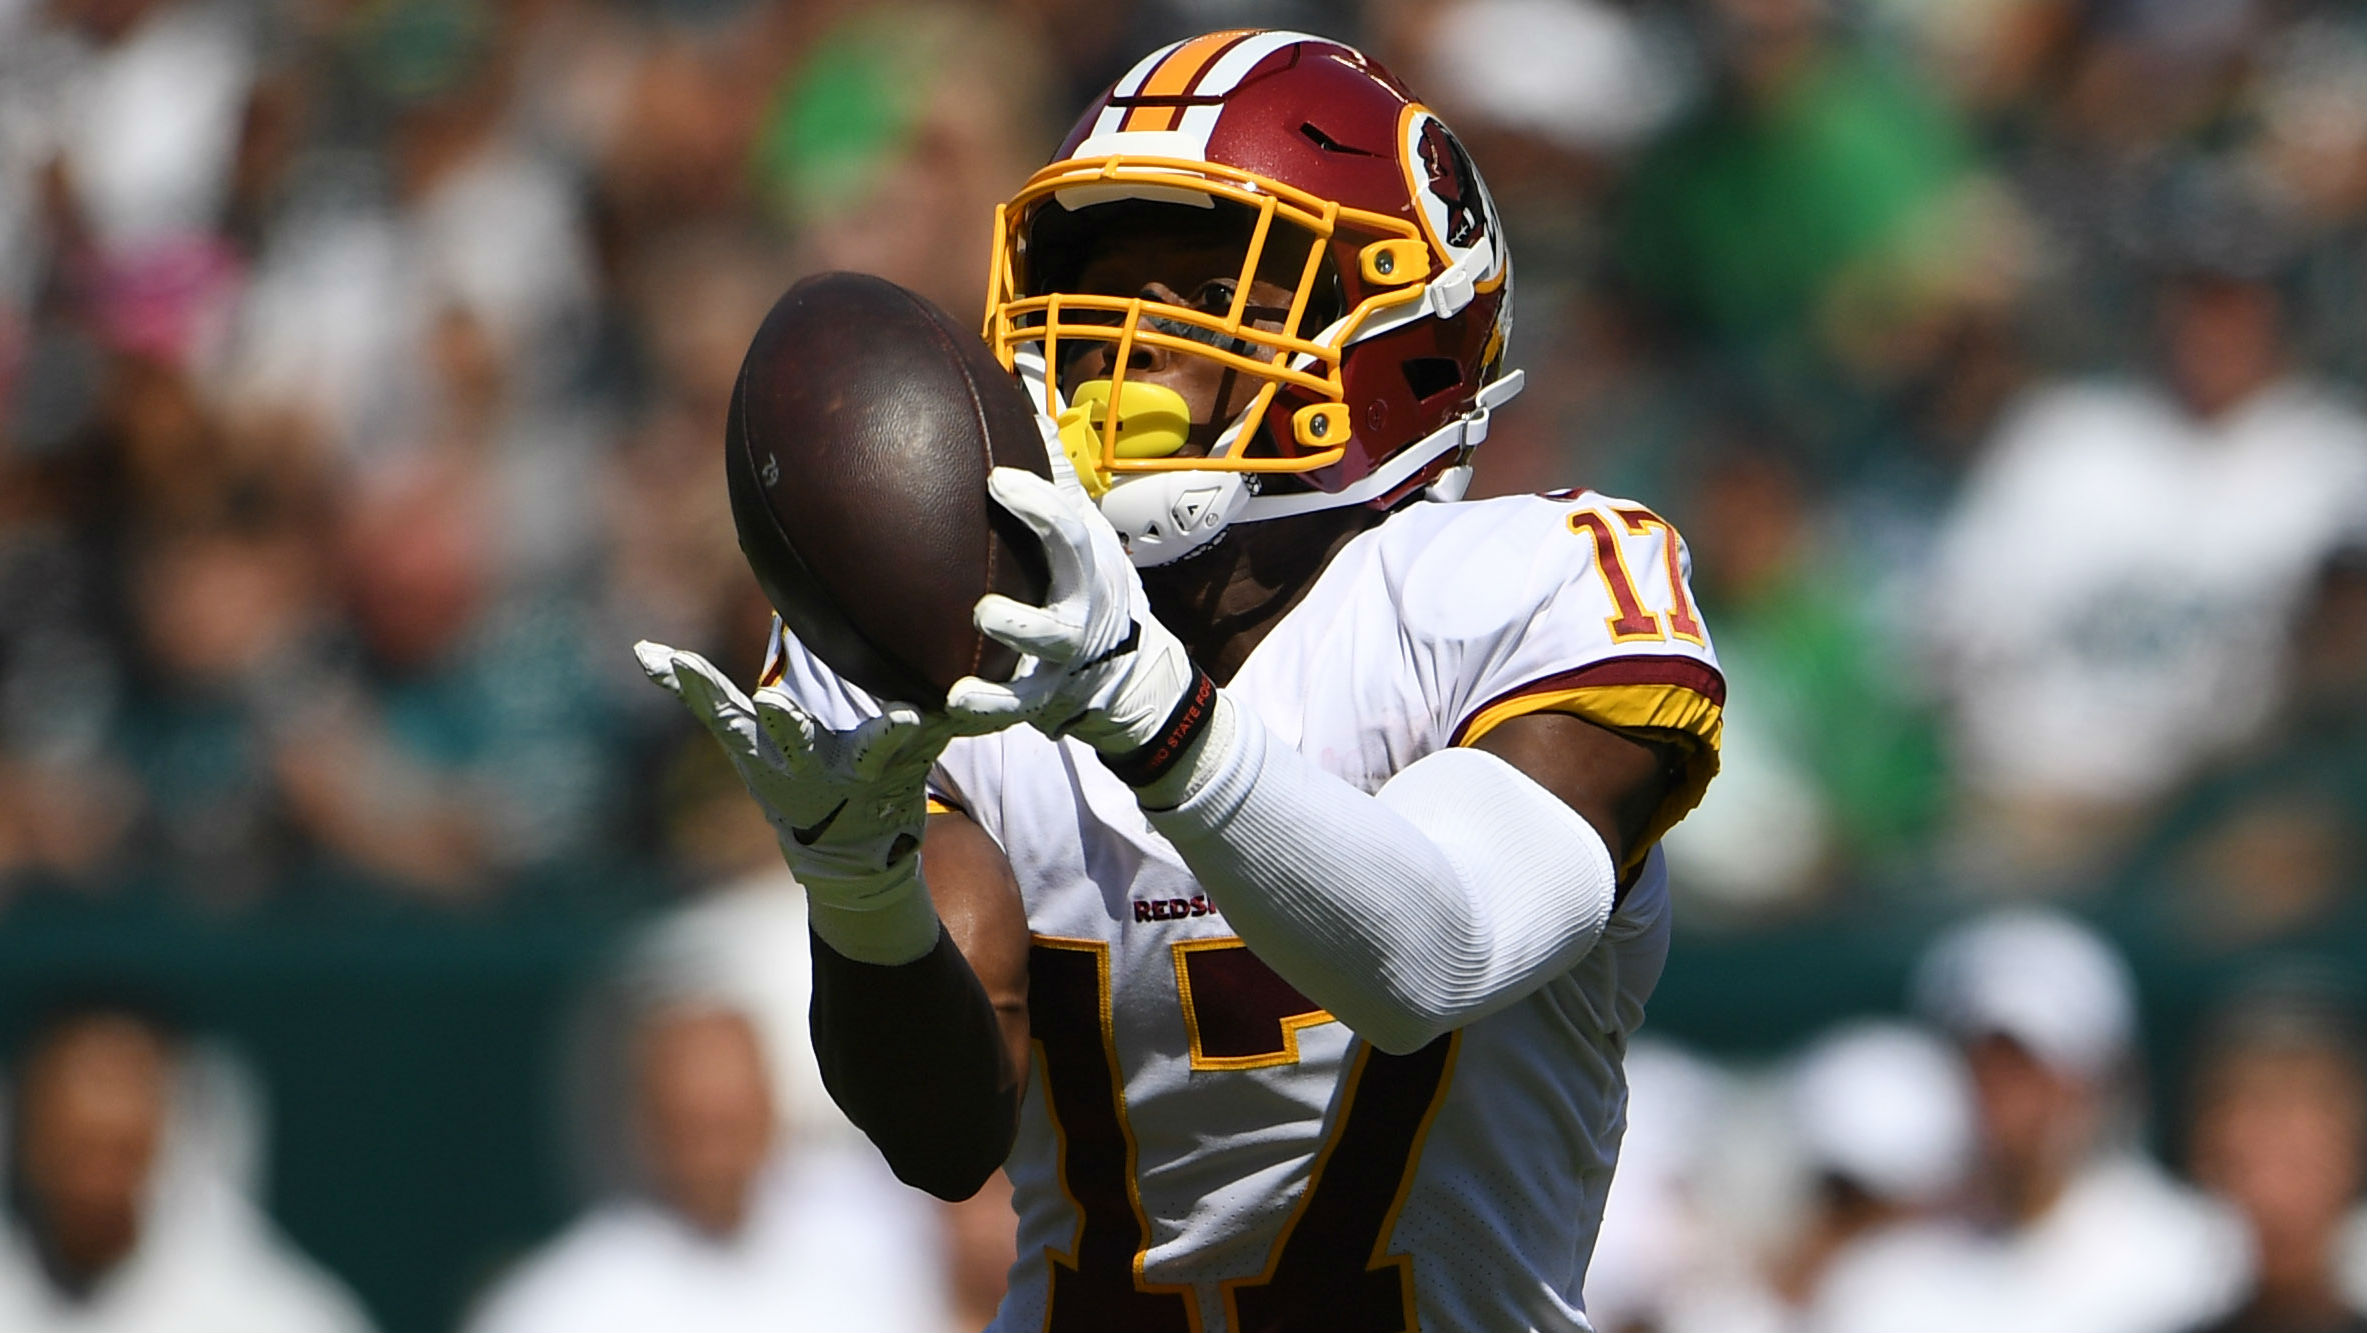 Pick up these Redskins, Ravens for your fantasy team